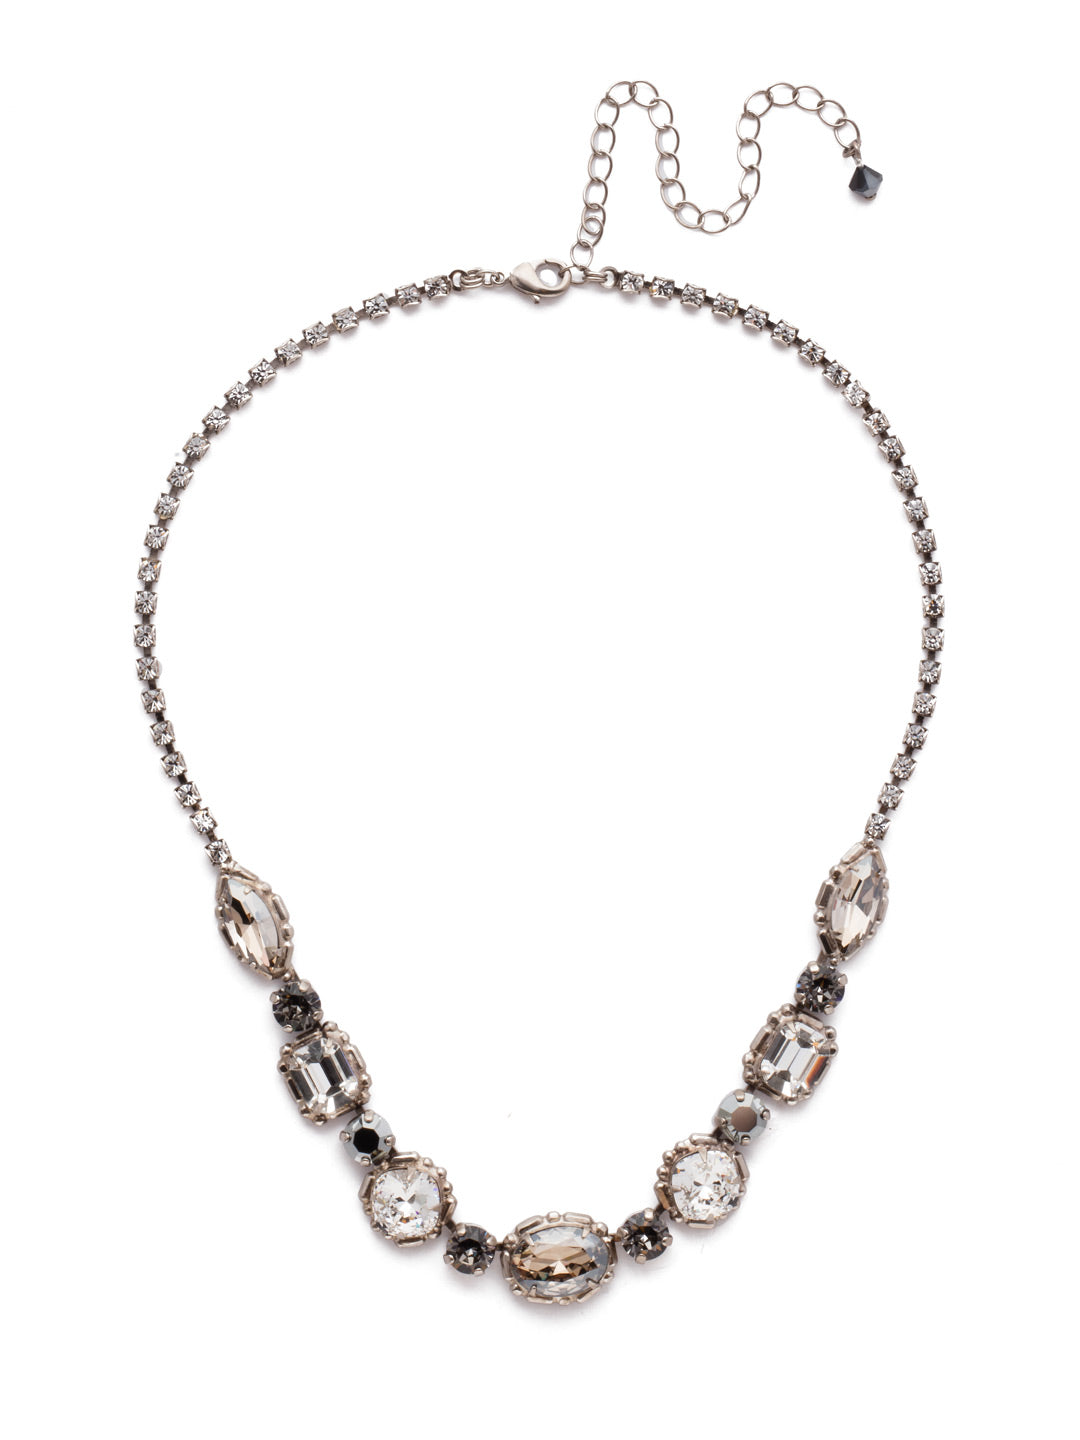 Cardoon Statement Necklace - NDX7ASCRO